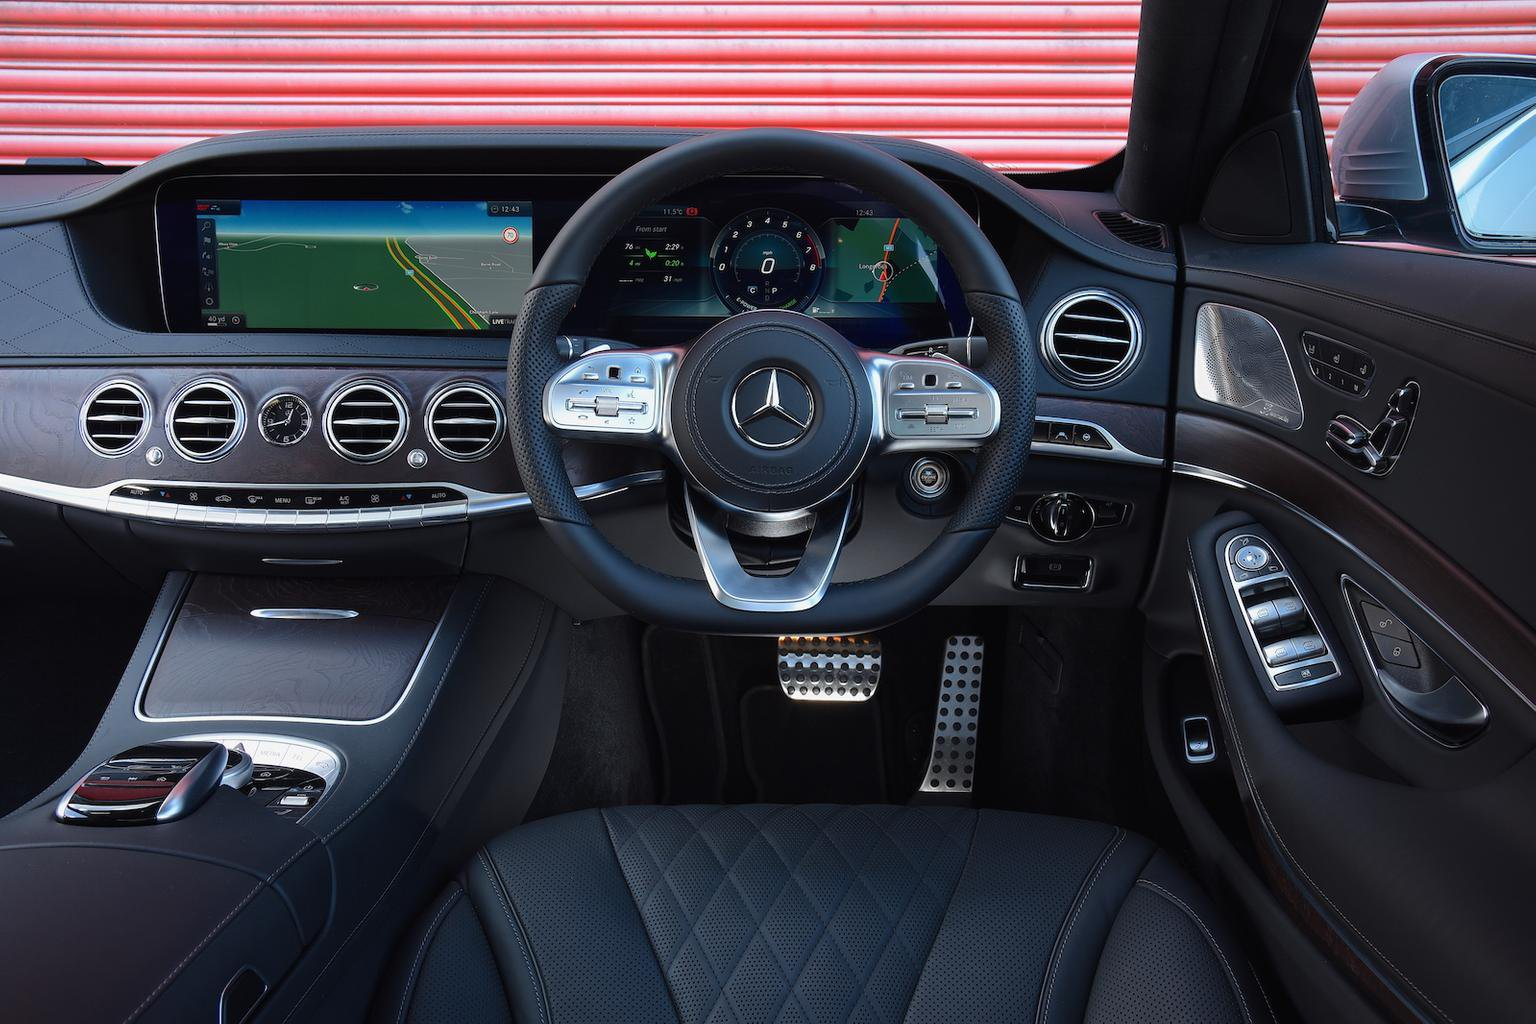 2017 Mercedes-Benz S-Class S500 review - price, specs and release date